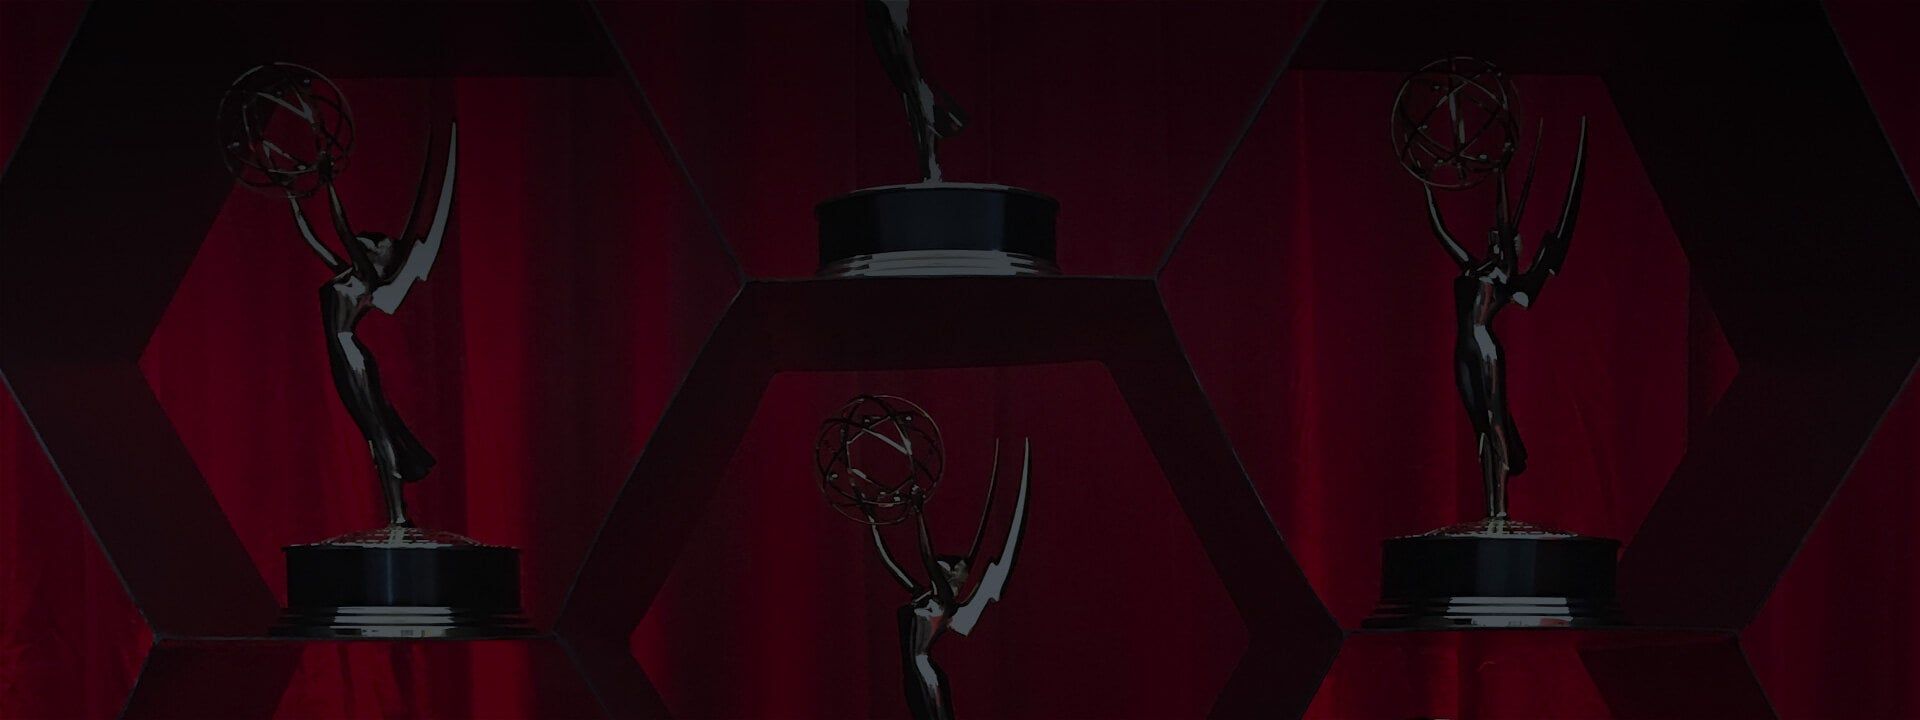 DataRobot Let s take it from the top DataRobot s predictions for 2020 Primetime Emmy Awards Background V1.0